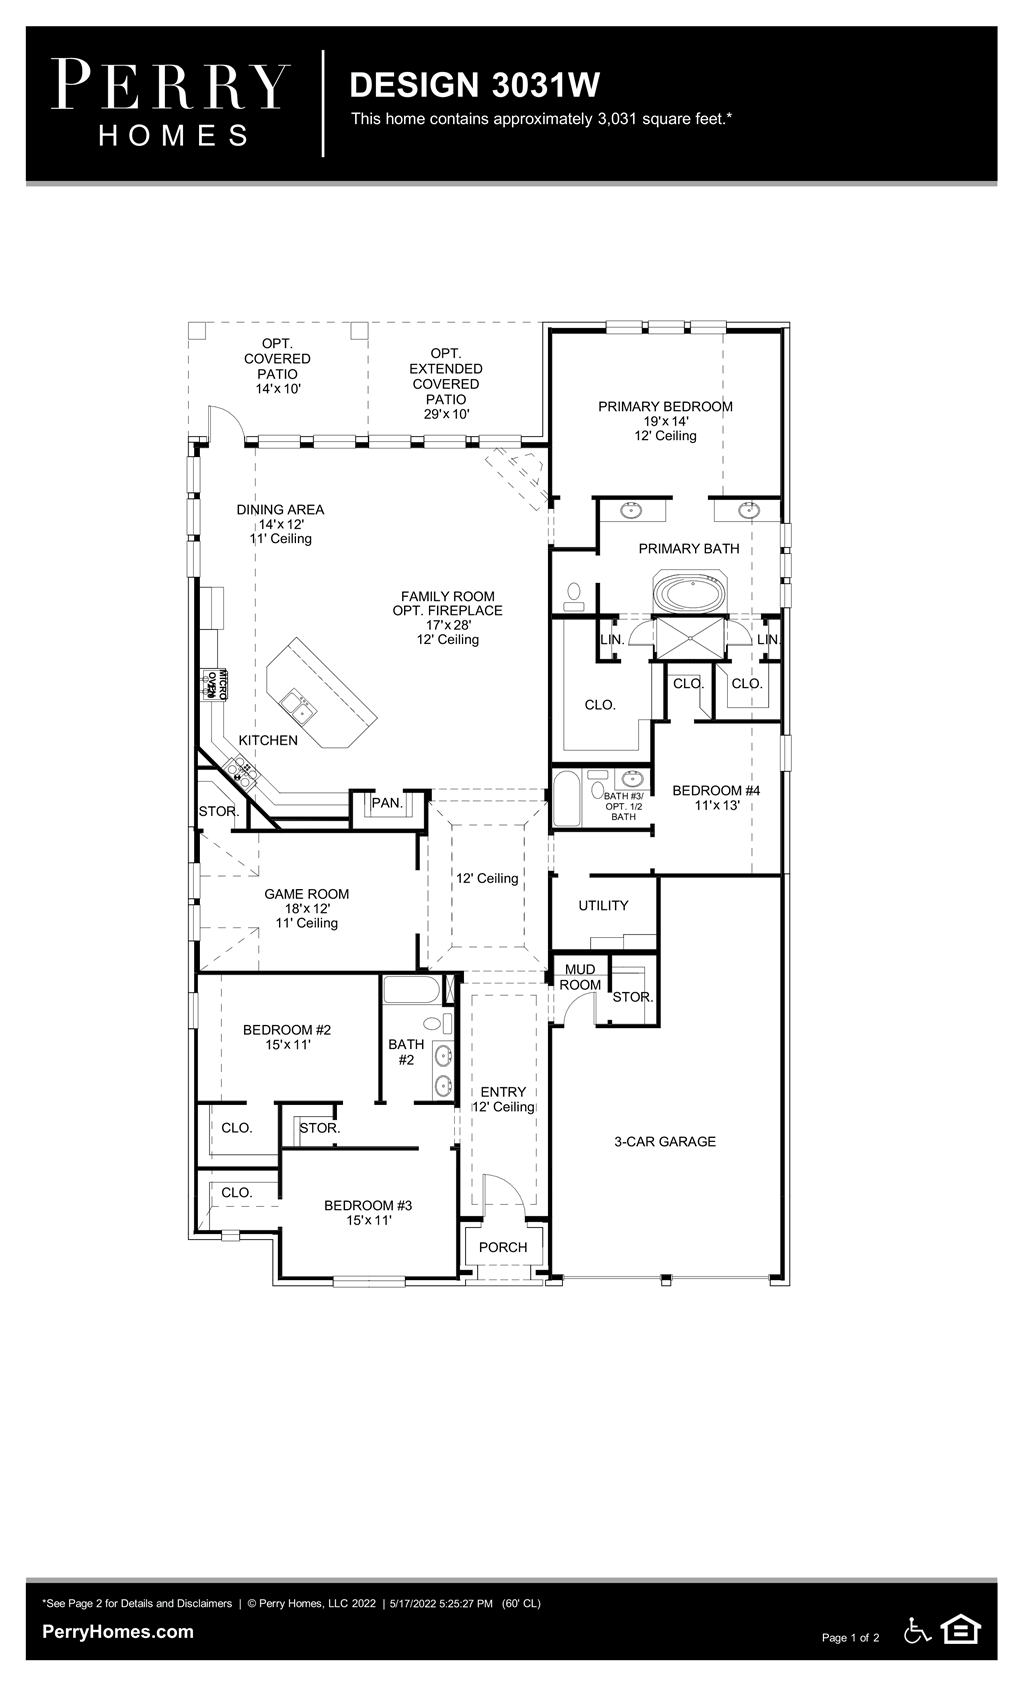 Floor Plan for 3031W